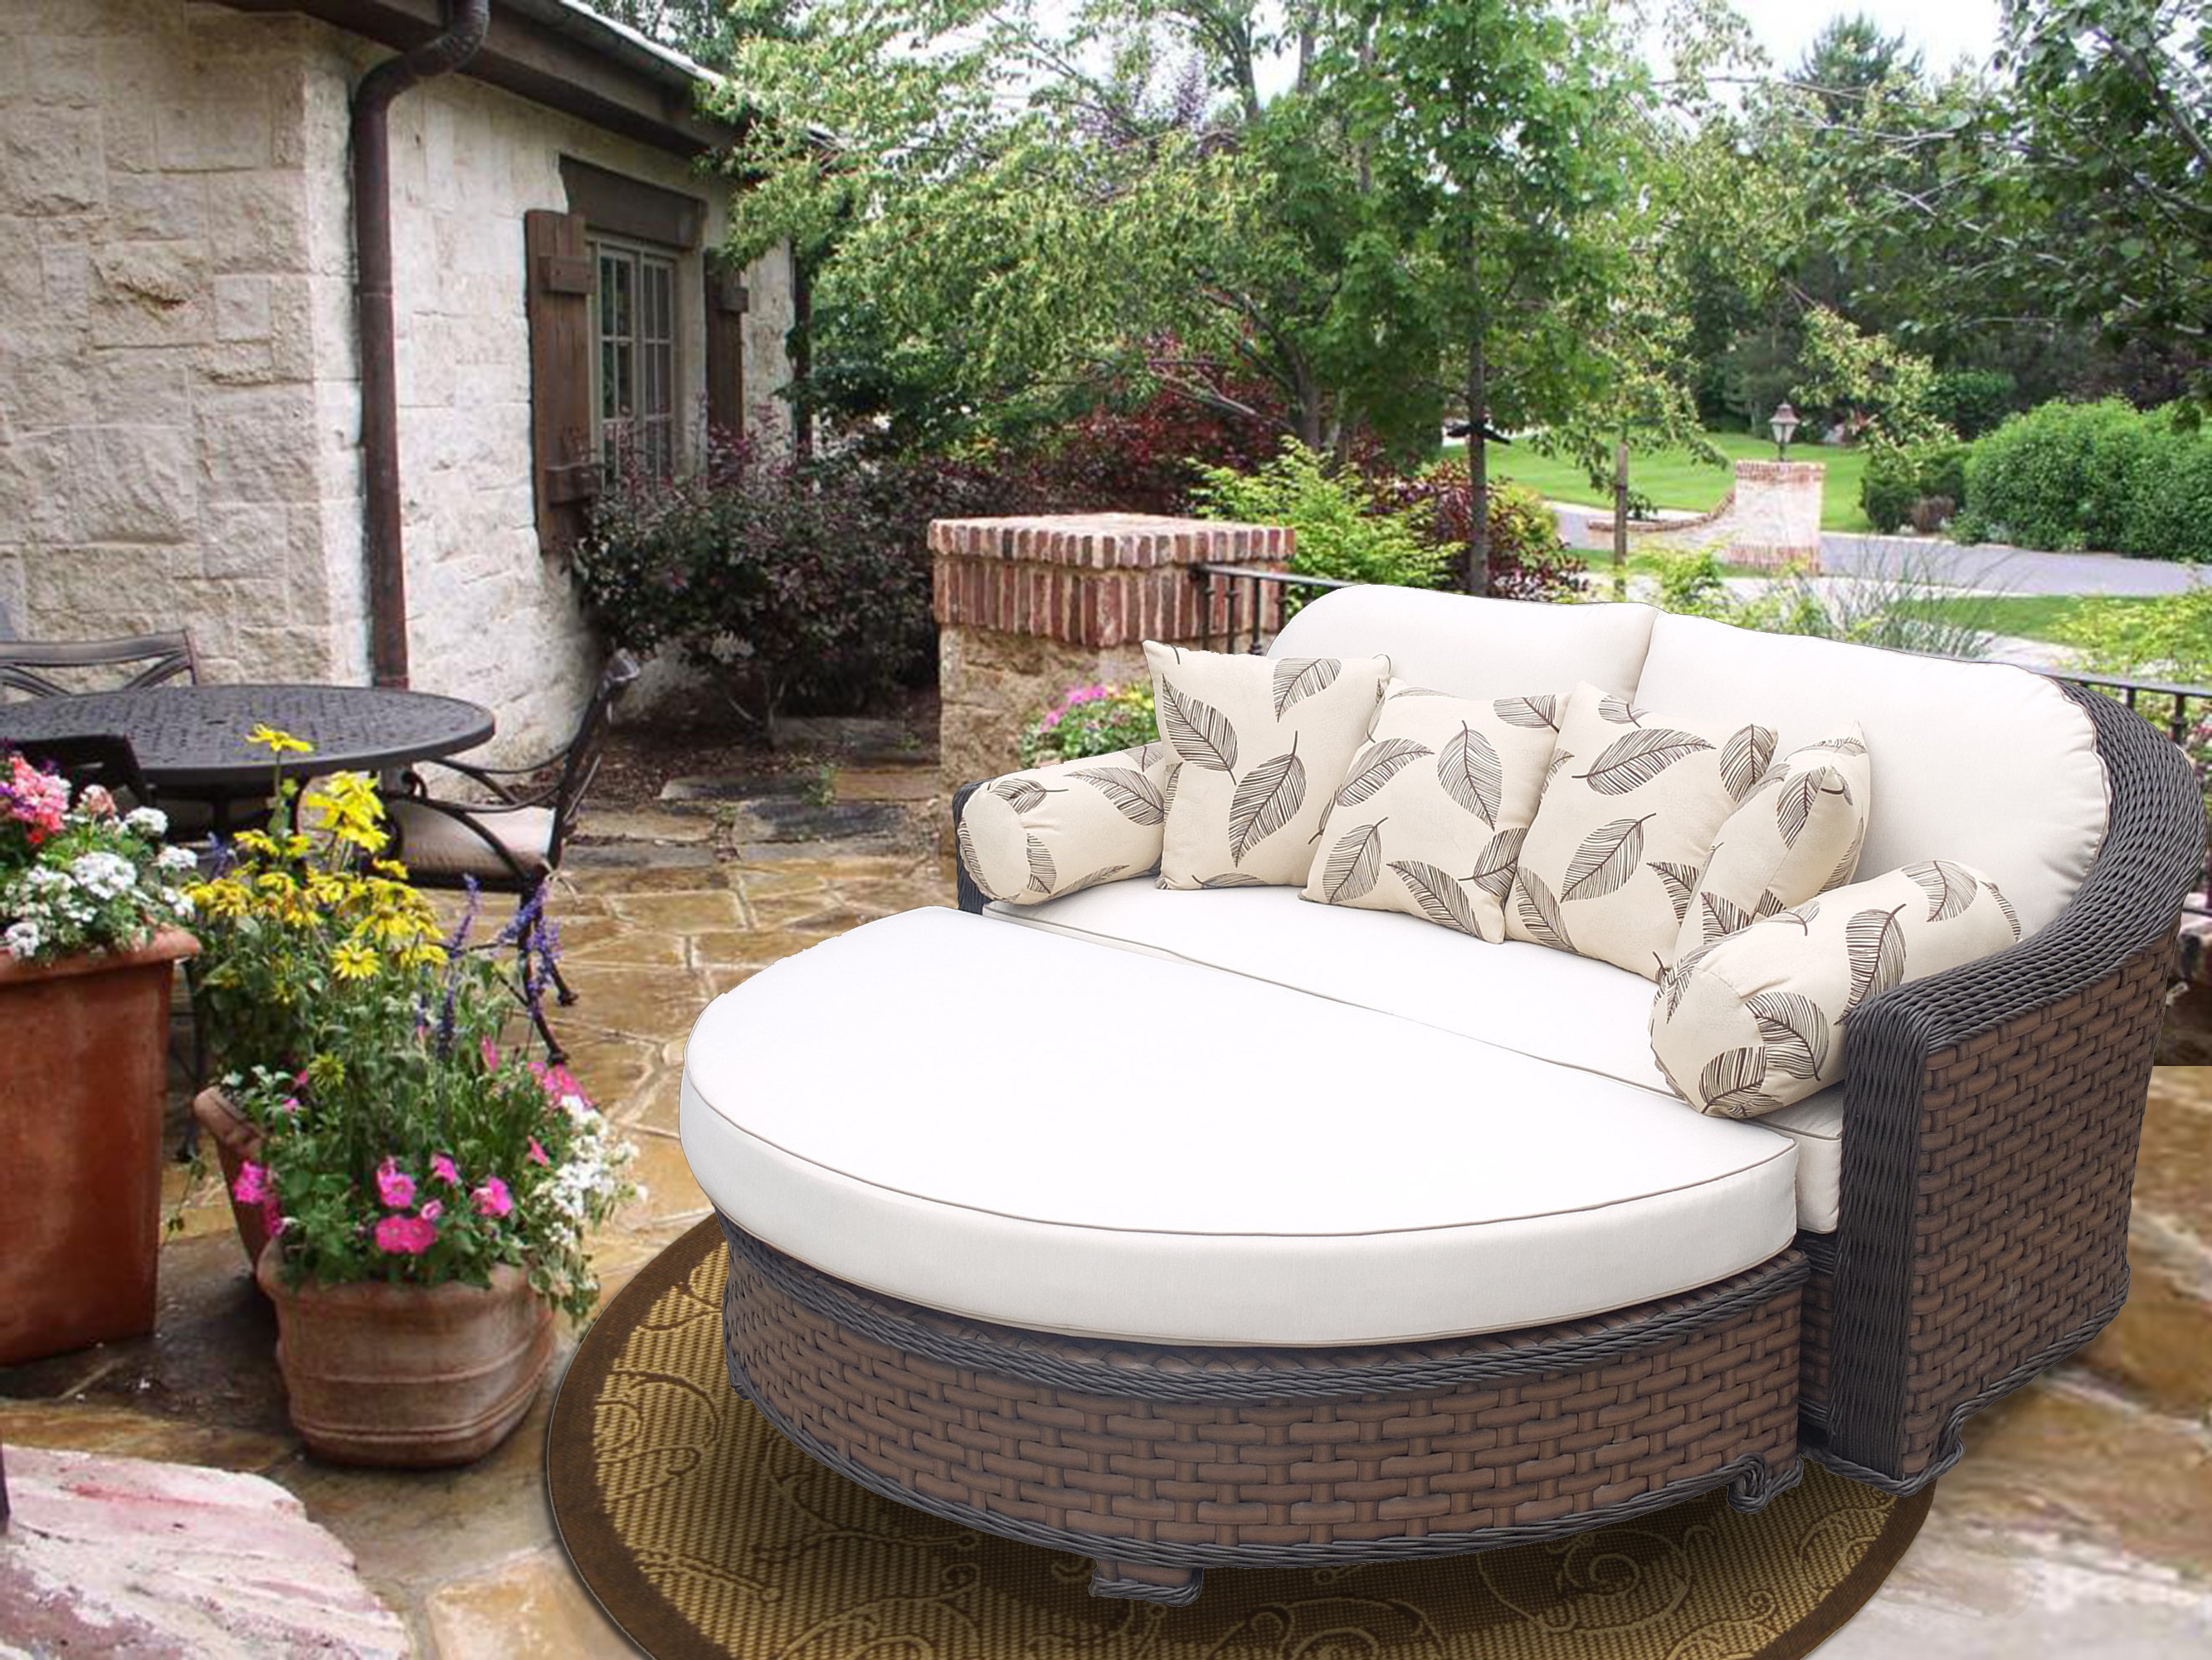 Preferred Gaia Premium Daybed With Cushions In Greening Outdoor Daybeds With Ottoman & Cushions (View 17 of 20)